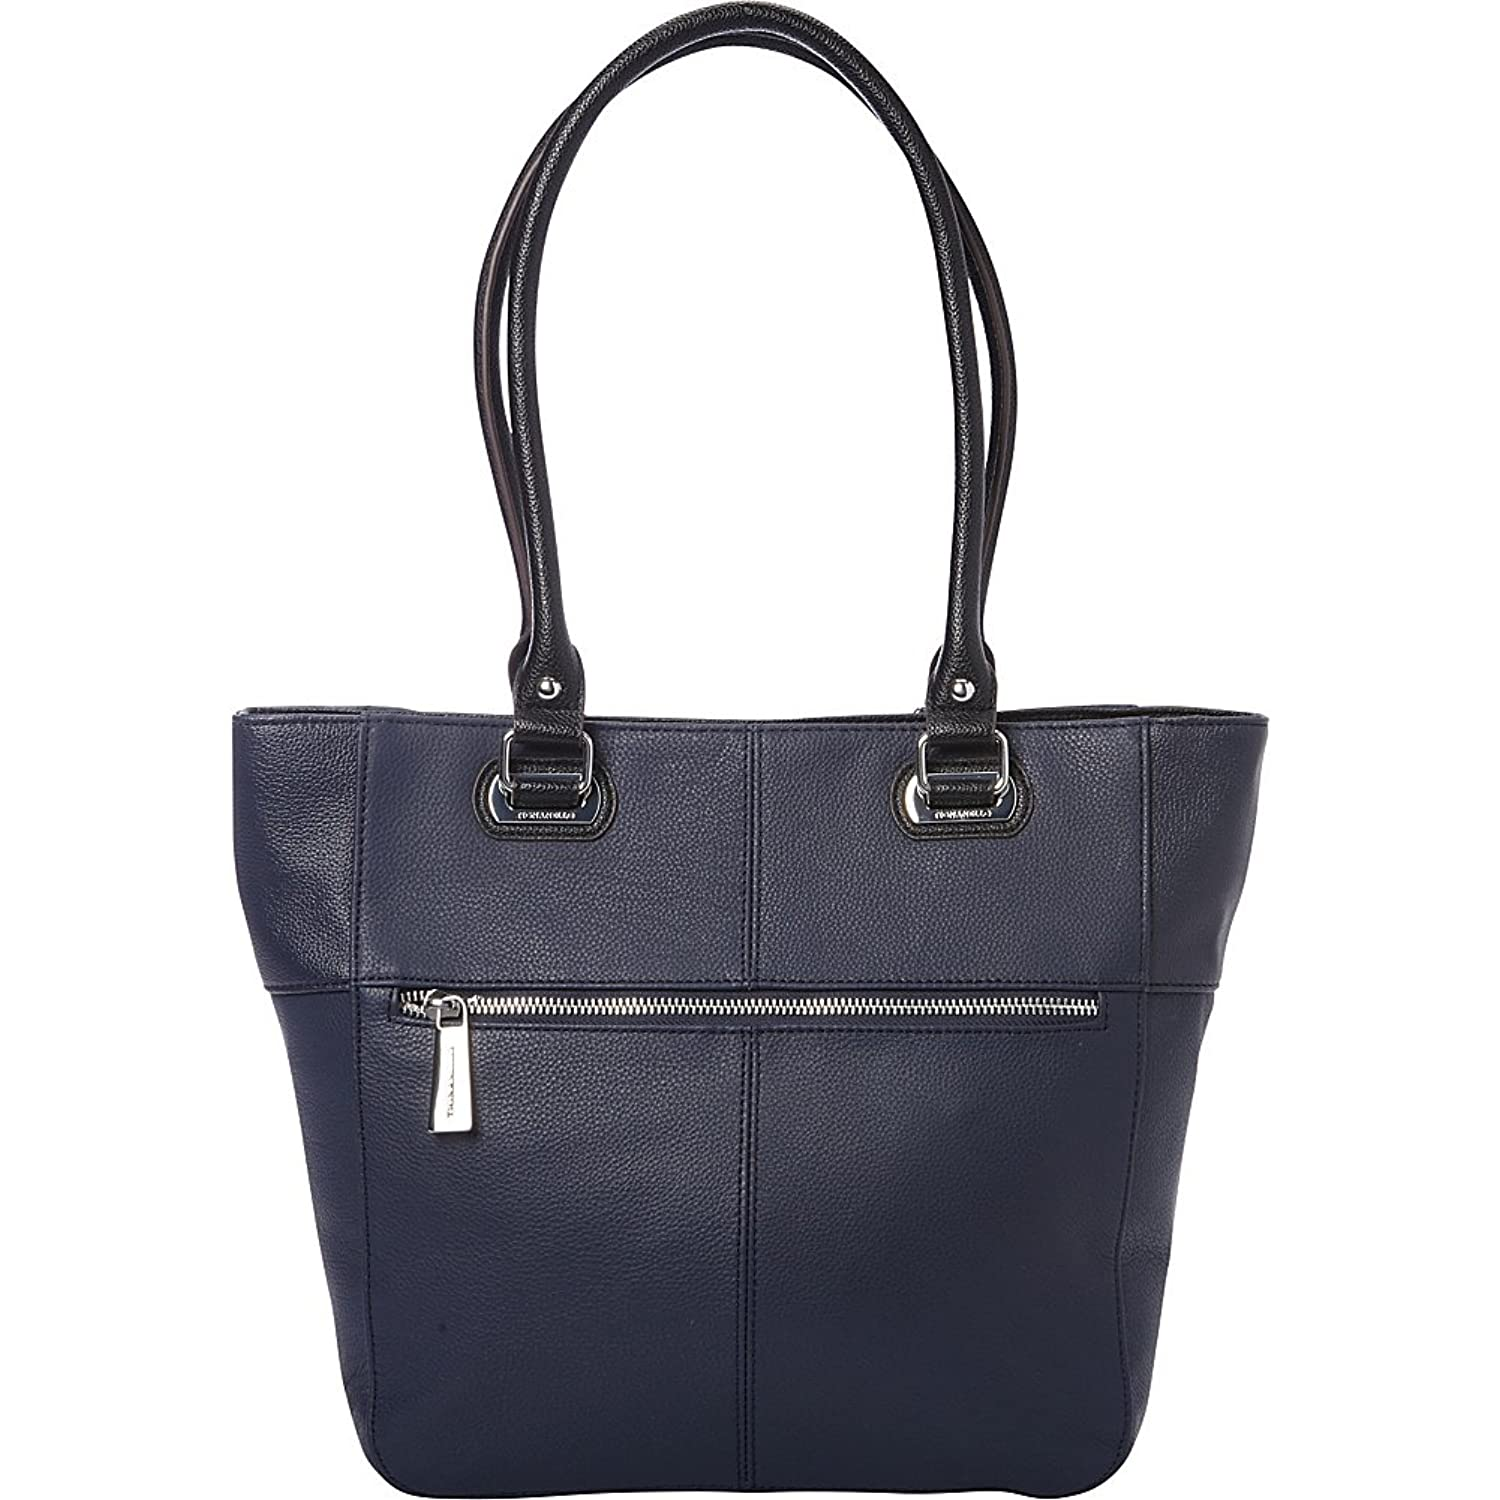 Tignanello Perfect Pockets Medium Tote Shoulder Bag